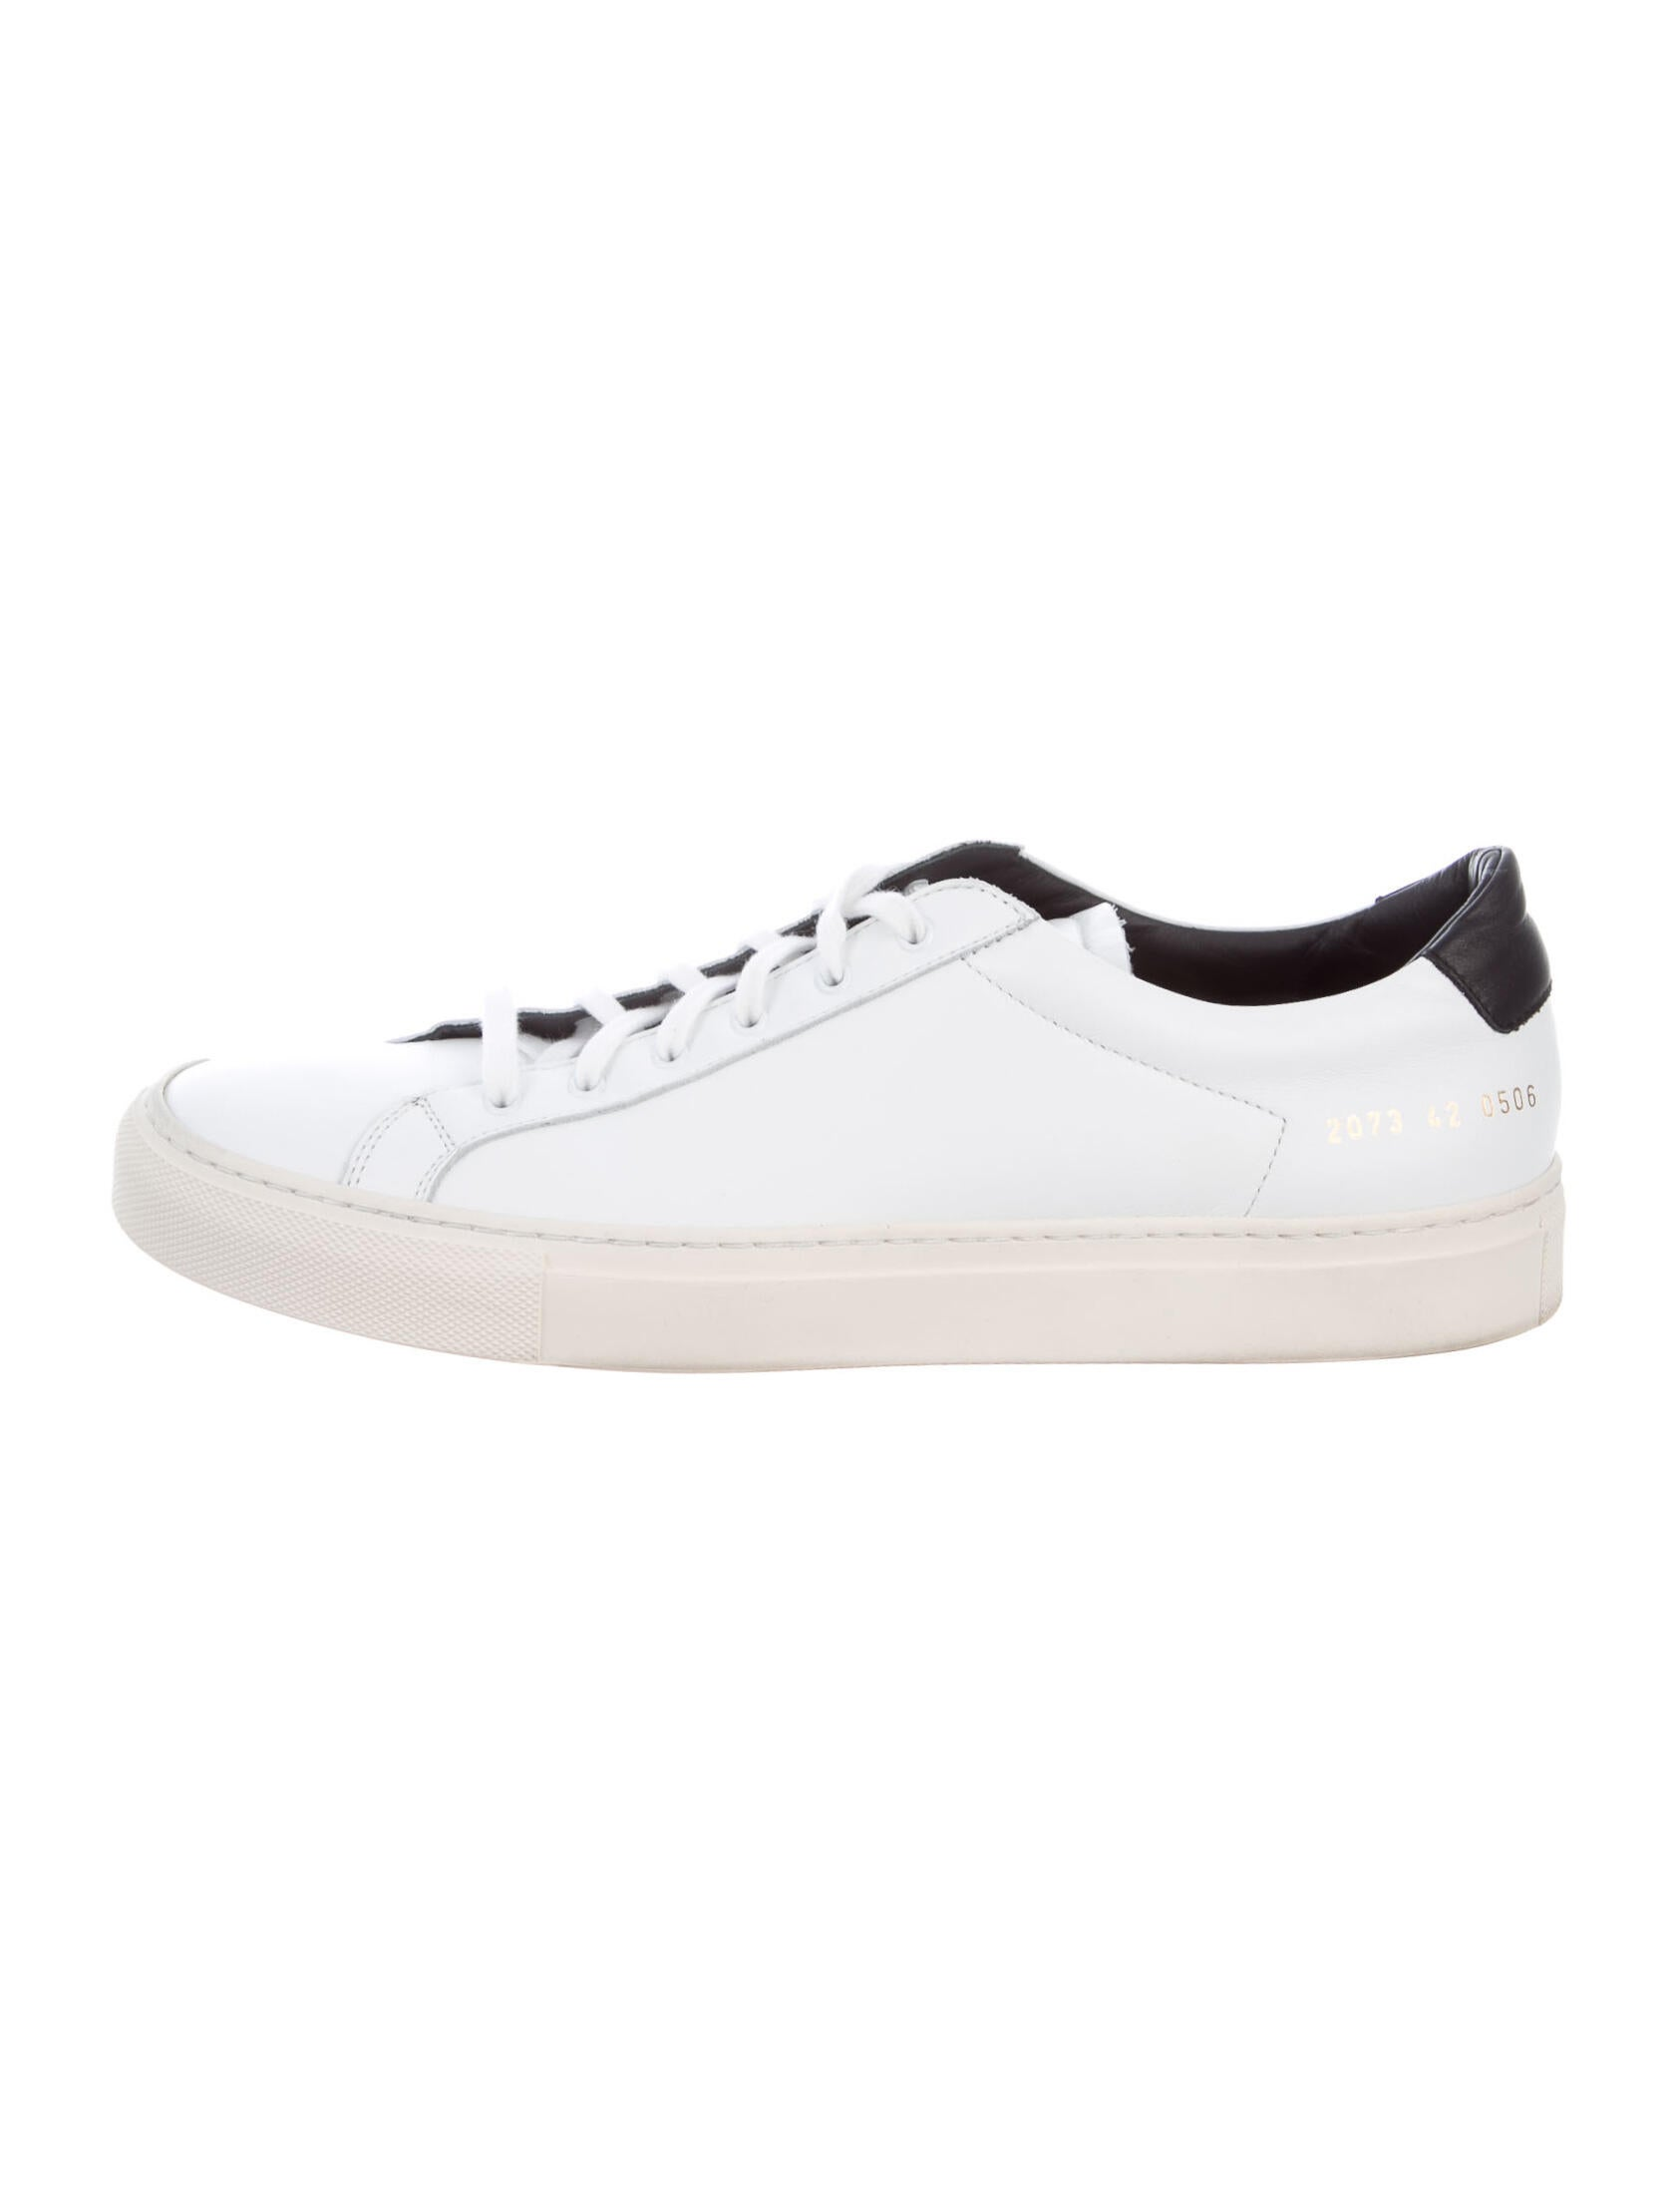 Common Projects | The RealReal